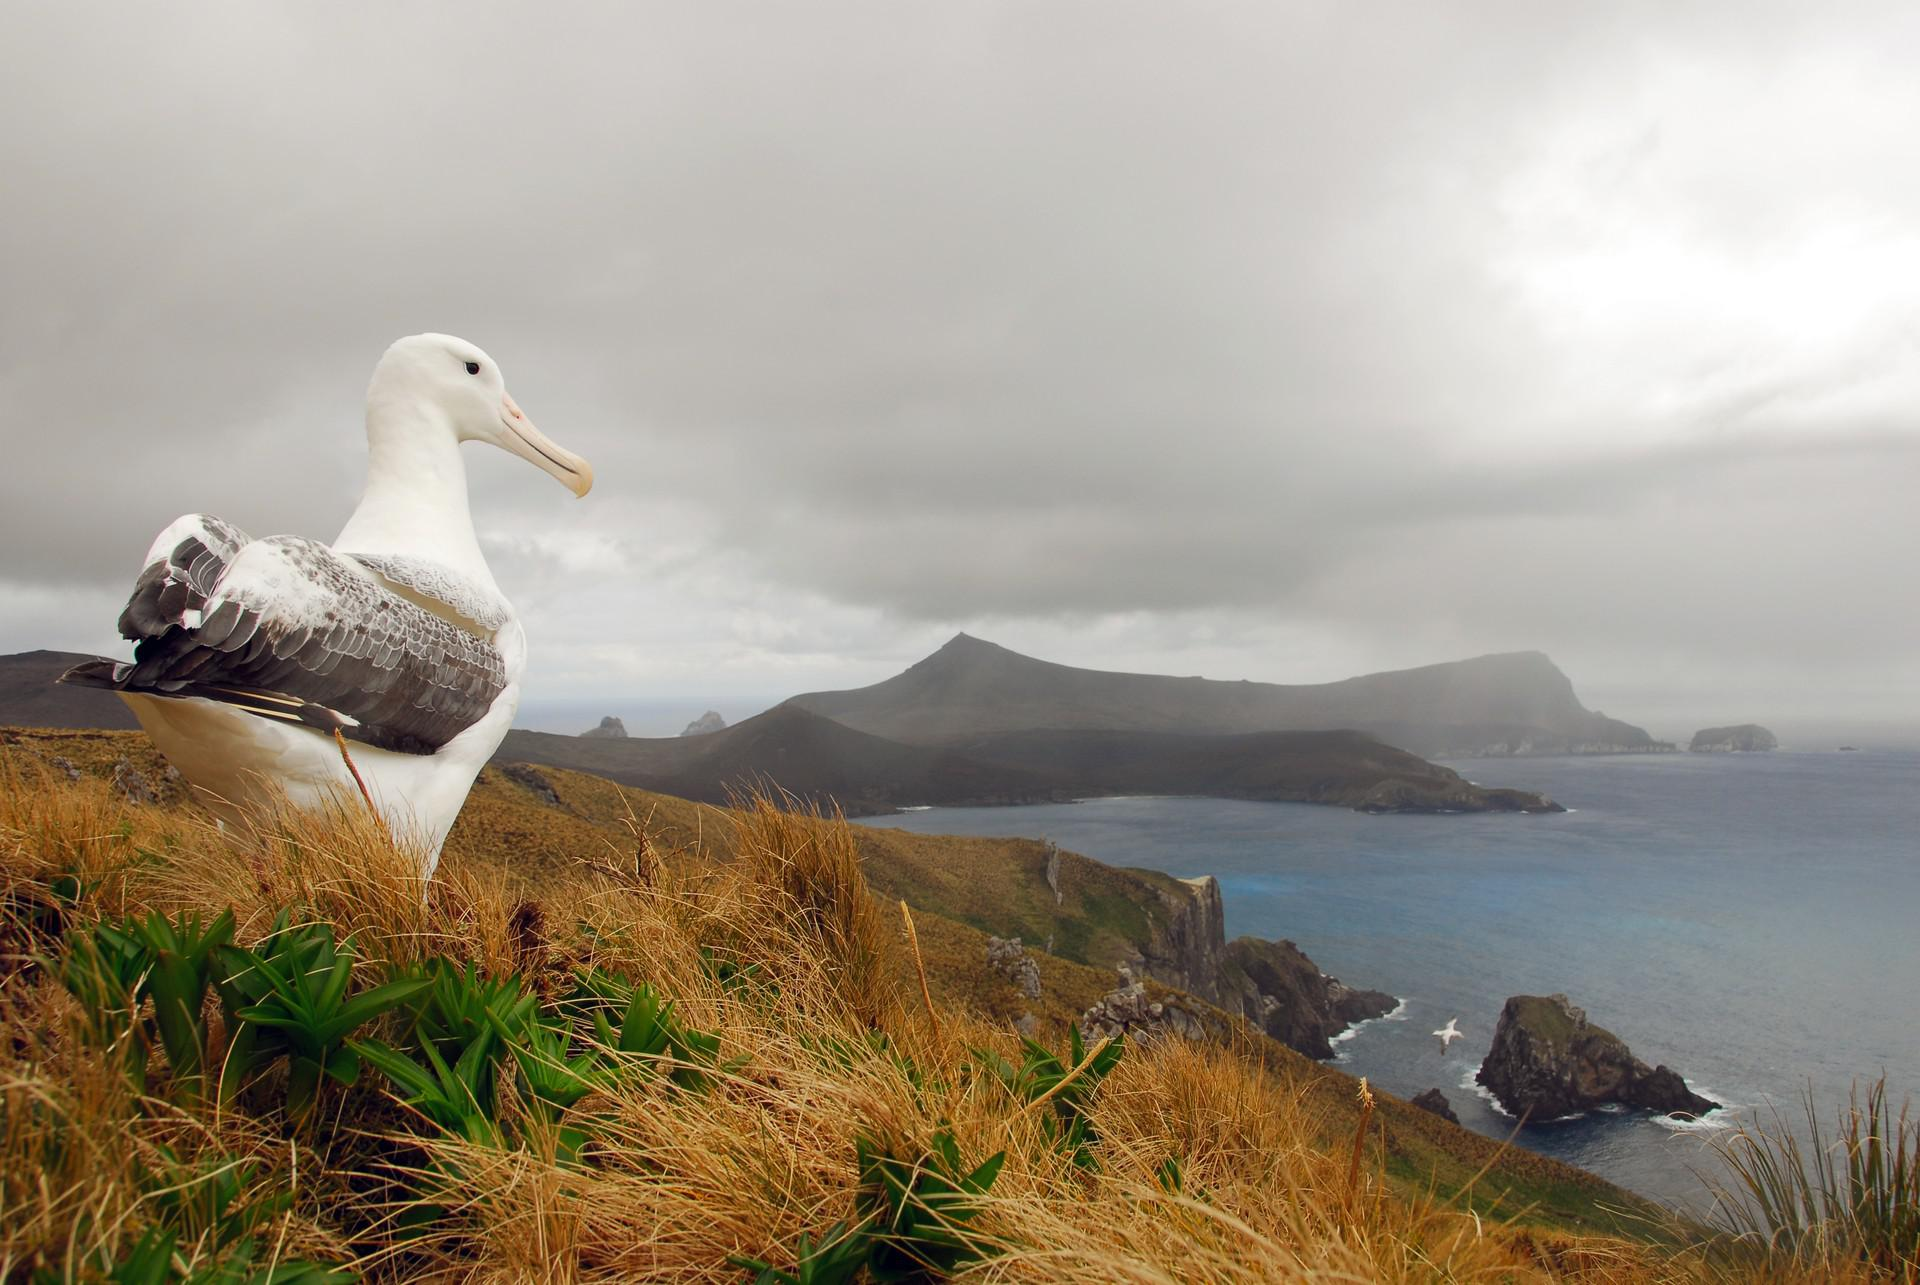 Forgotten Islands of the South Pacific: Subantarctic Islands